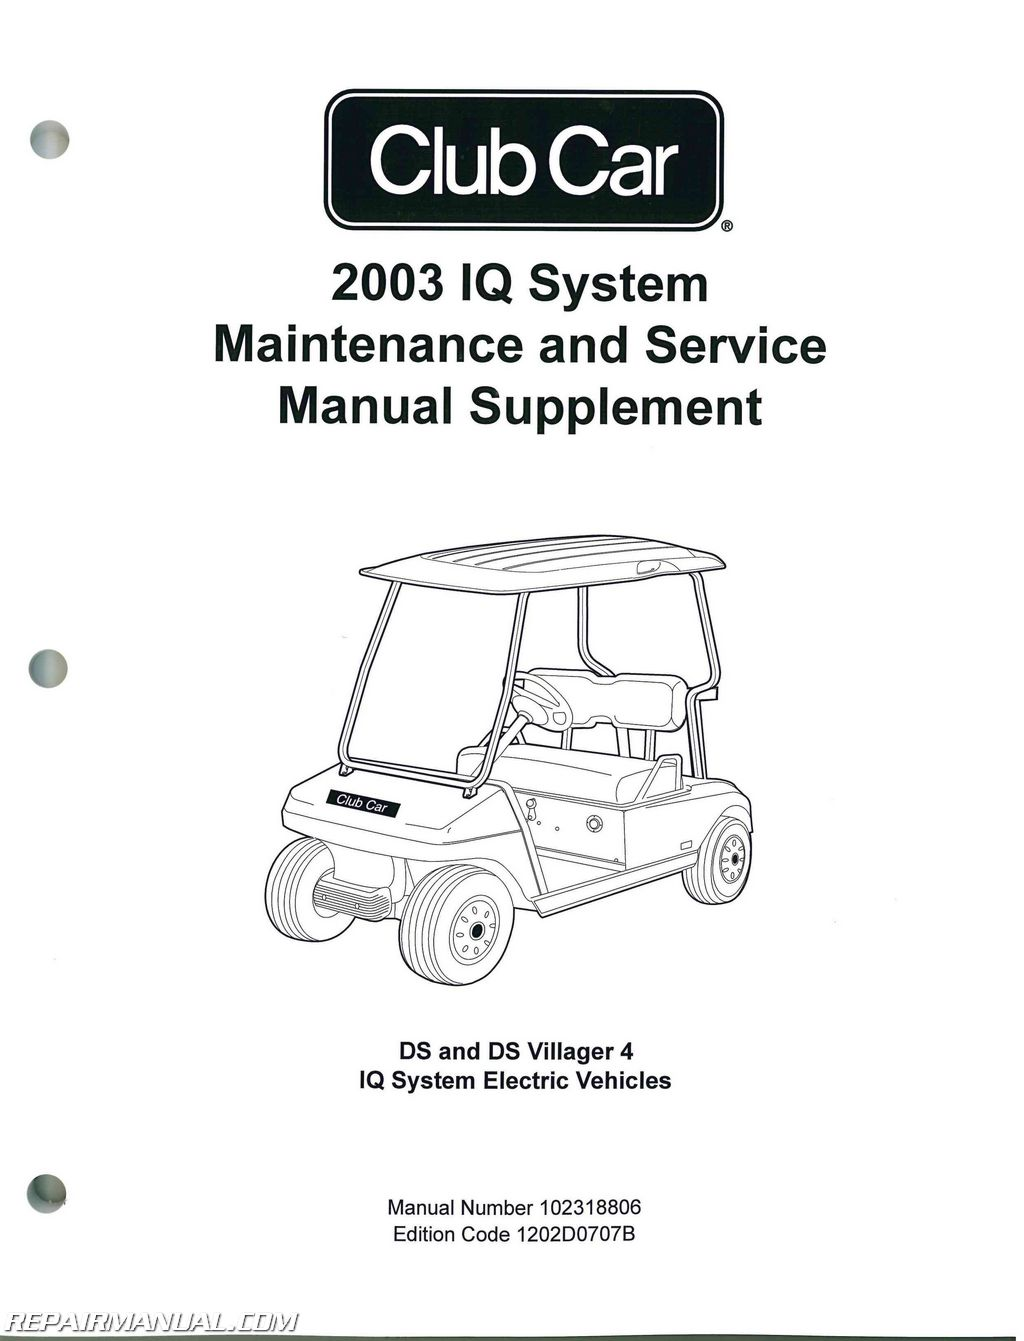 2003 Club Car IQ System Maintenance – Service Manual Supplement